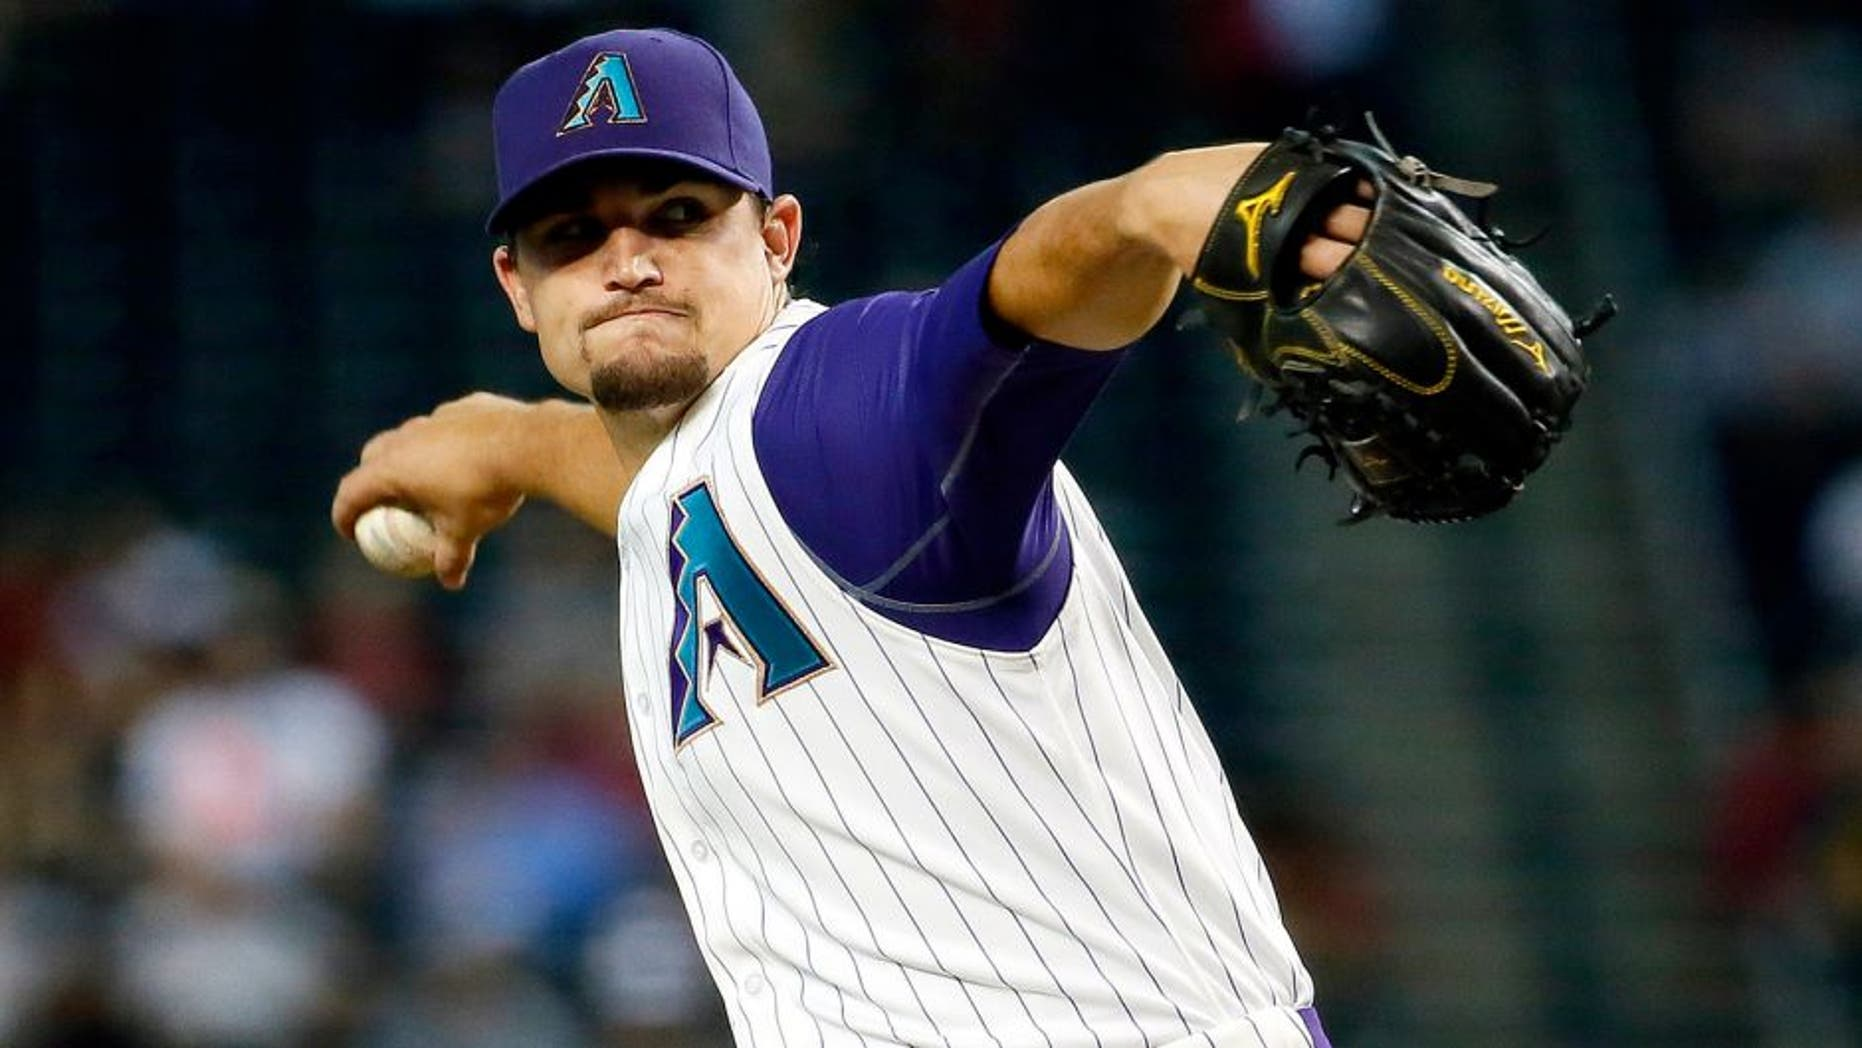 Arizona Diamondbacks pitcher Zack Godley throws during the first inning of a baseball game against the Milwaukee Brewers, Thursday, July 23, 2015, in Phoenix. (AP Photo/Matt York)